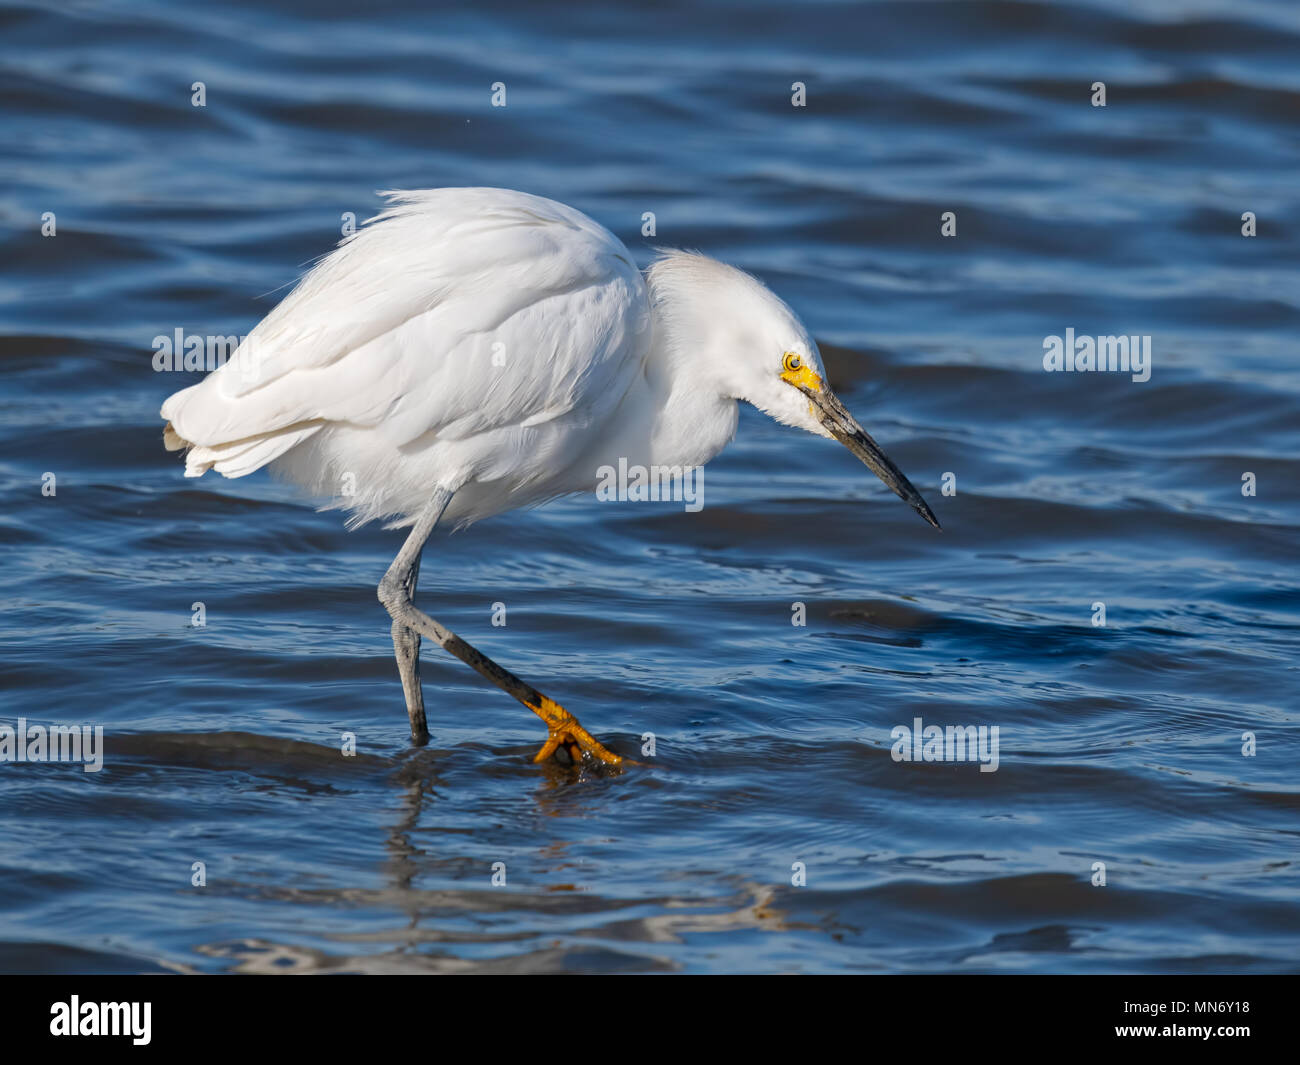 Snowy Egret Hunting - Stock Image